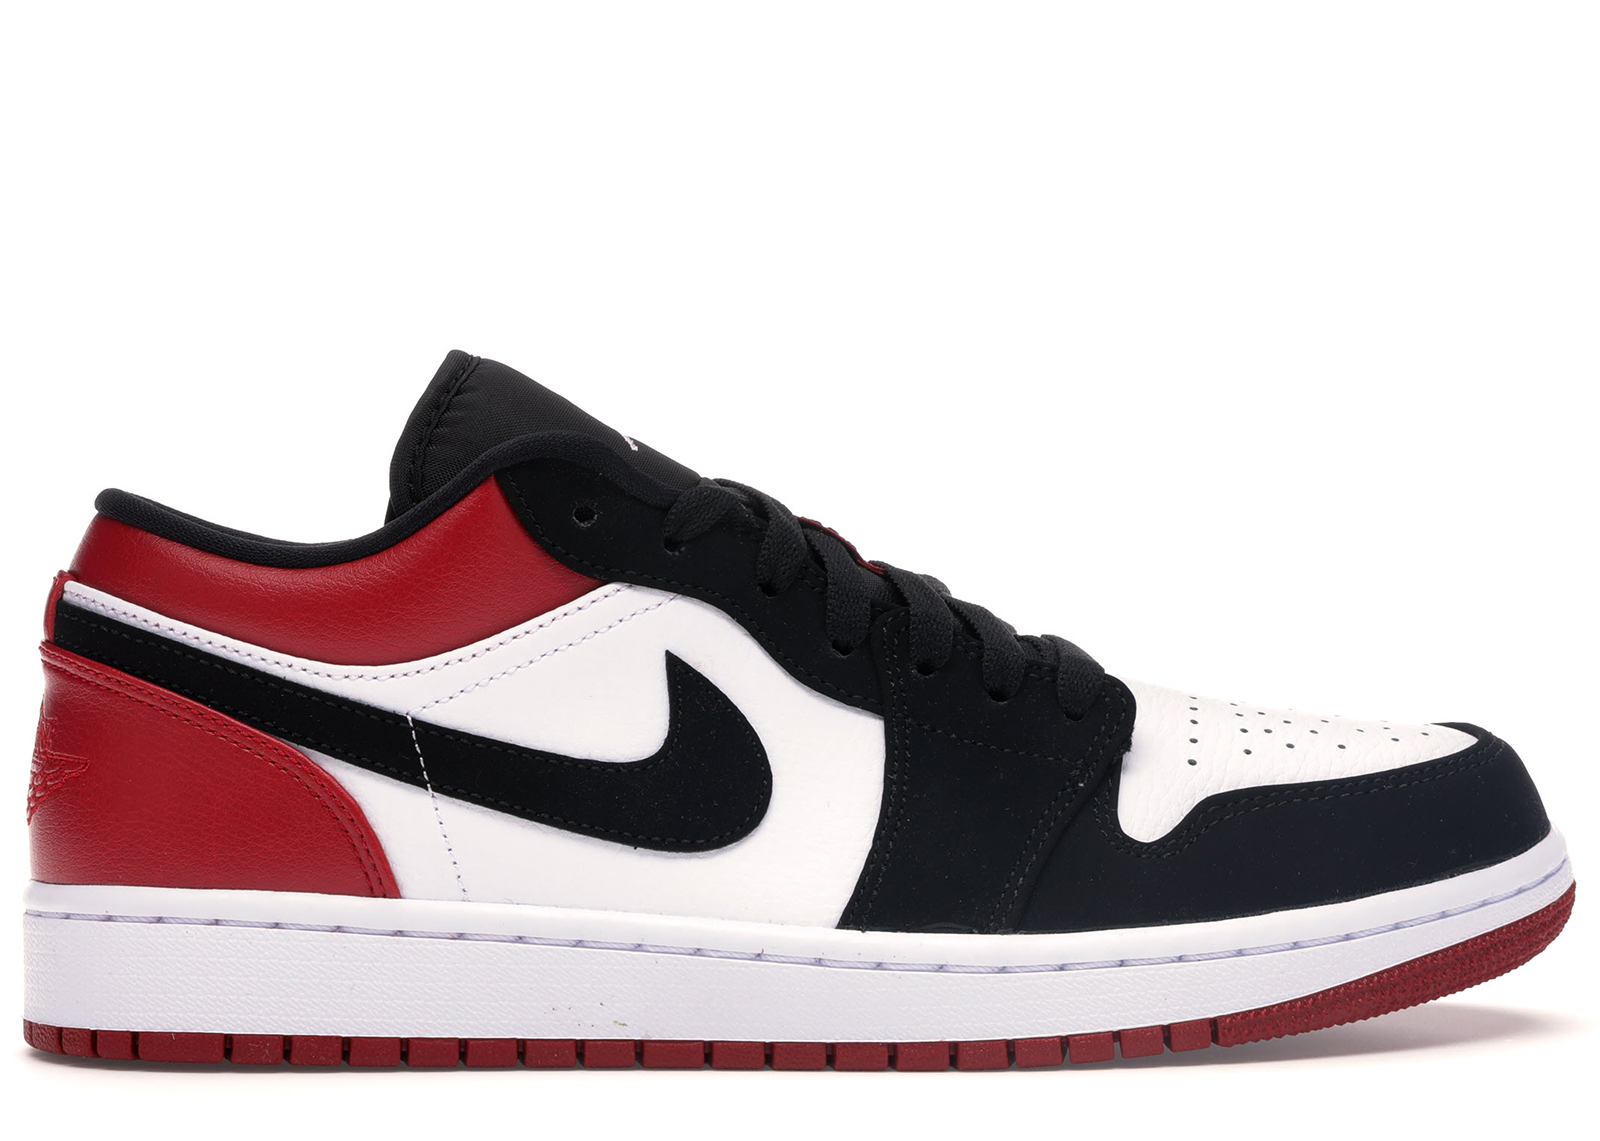 Jordan 1 Low Black Toe - 553558-116